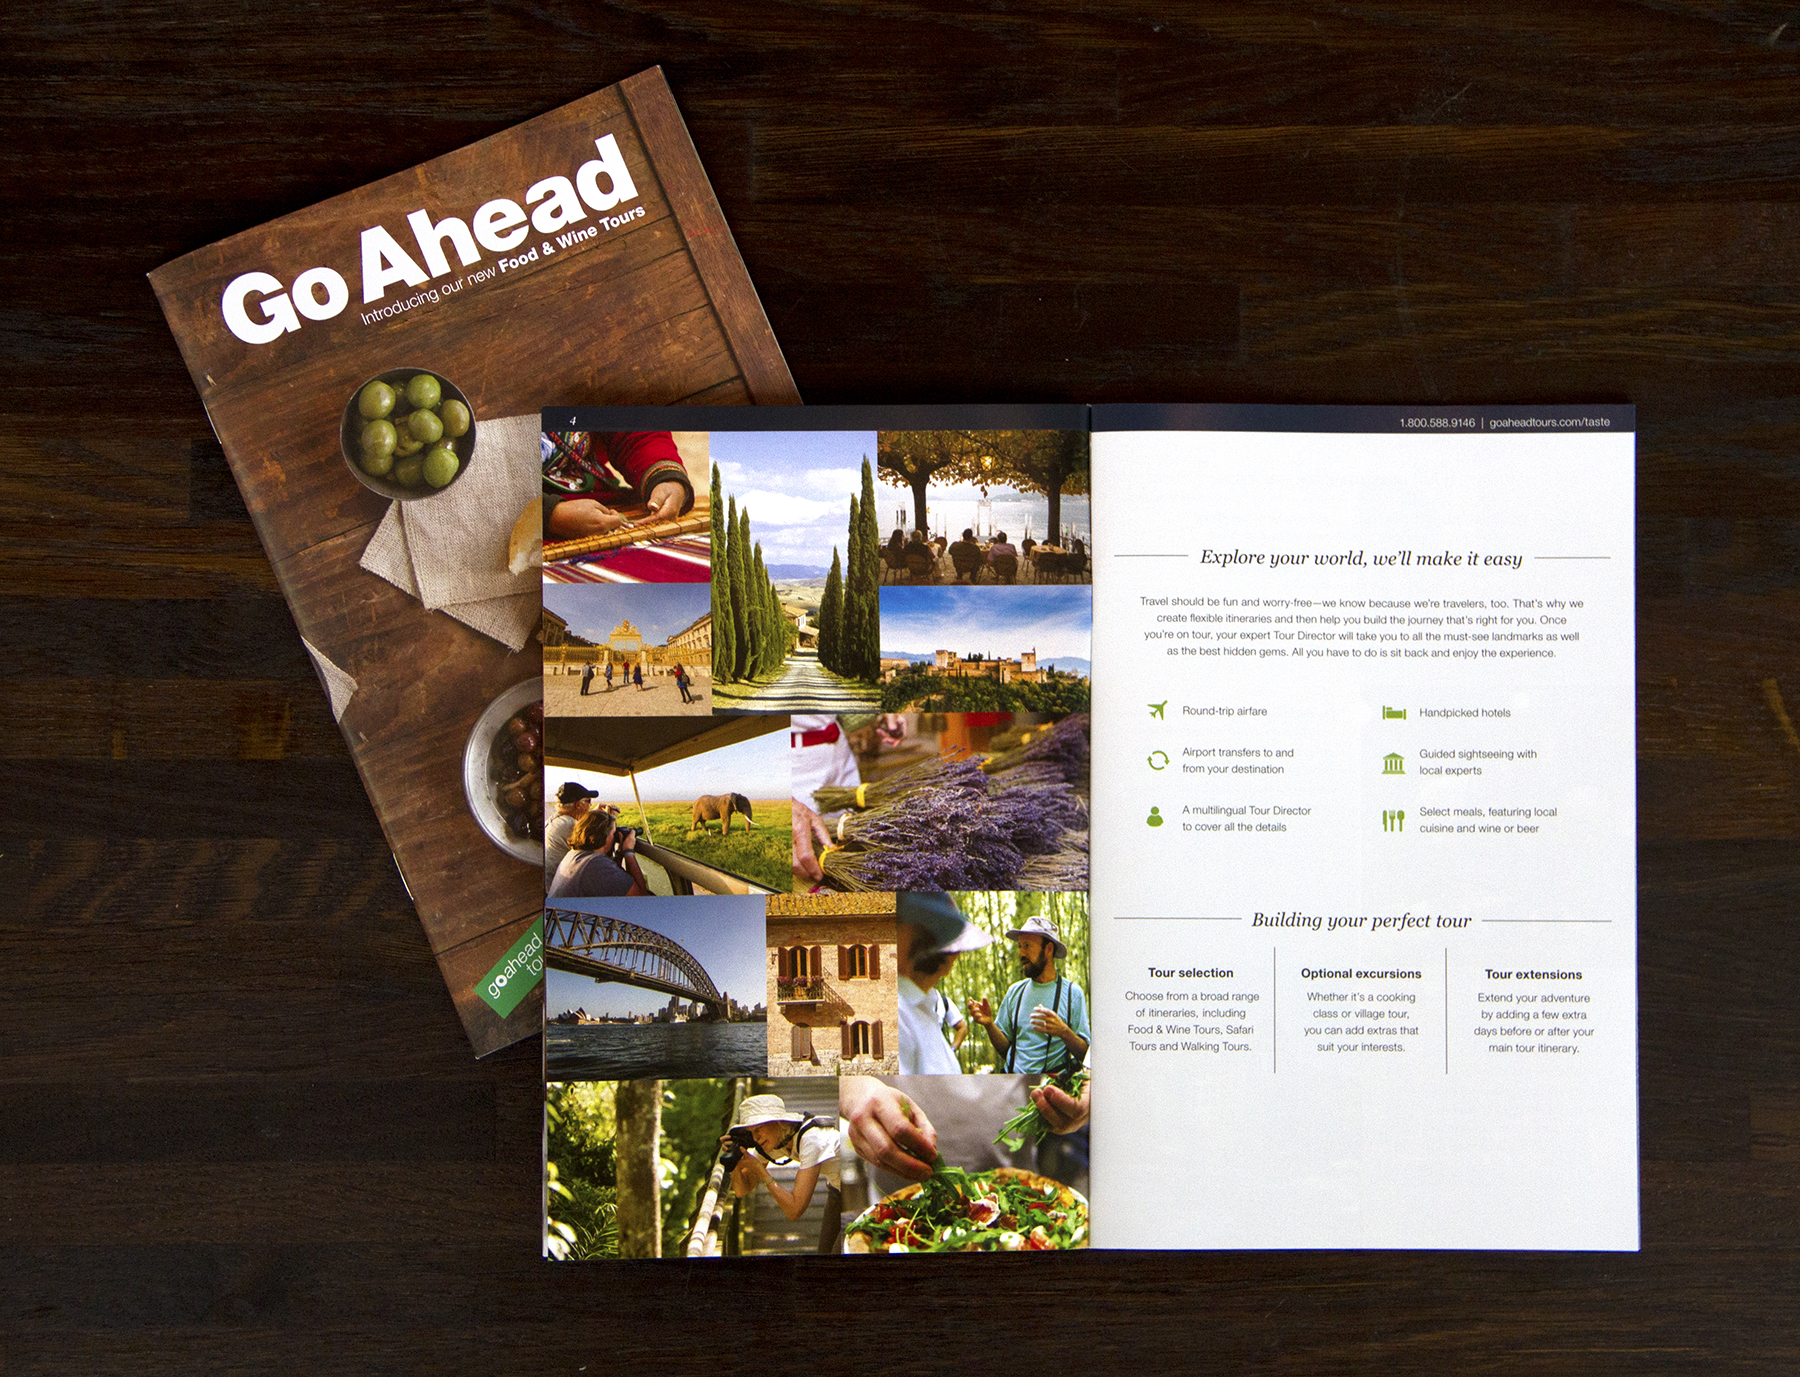 About Go Ahead page (click to enlarge)